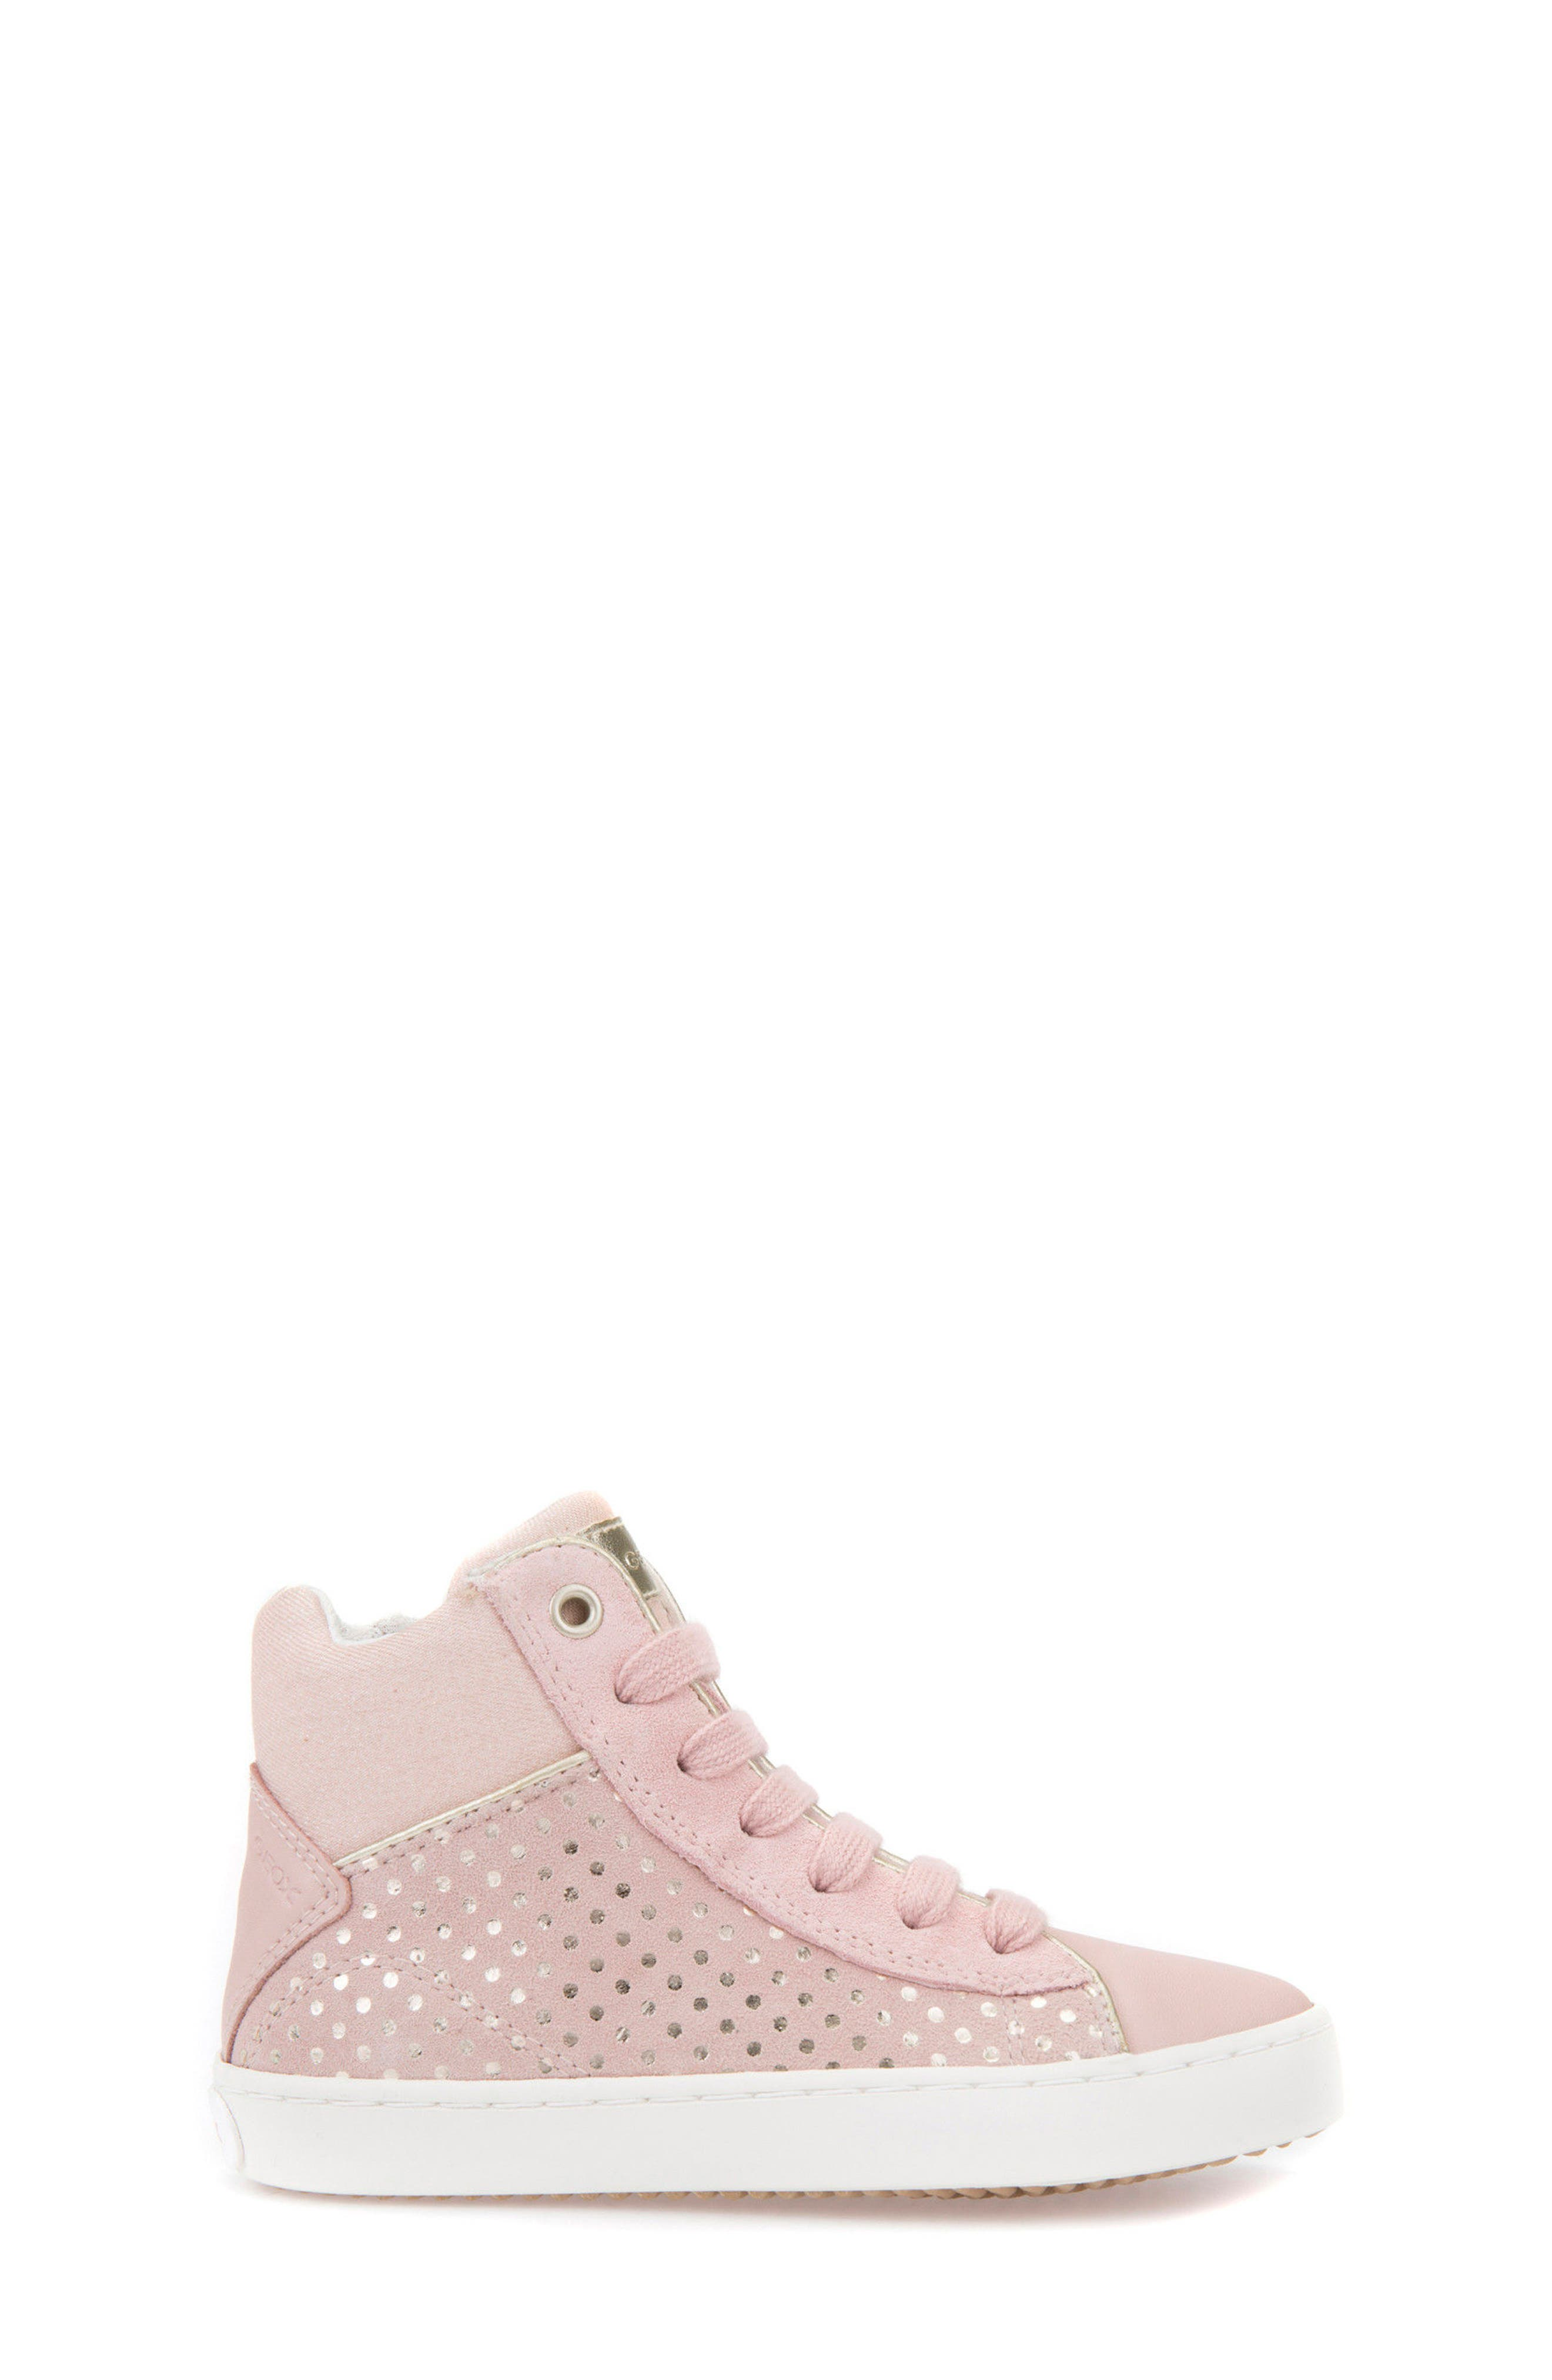 Kilwi High Top Zip Sneaker,                             Alternate thumbnail 3, color,                             ROSE